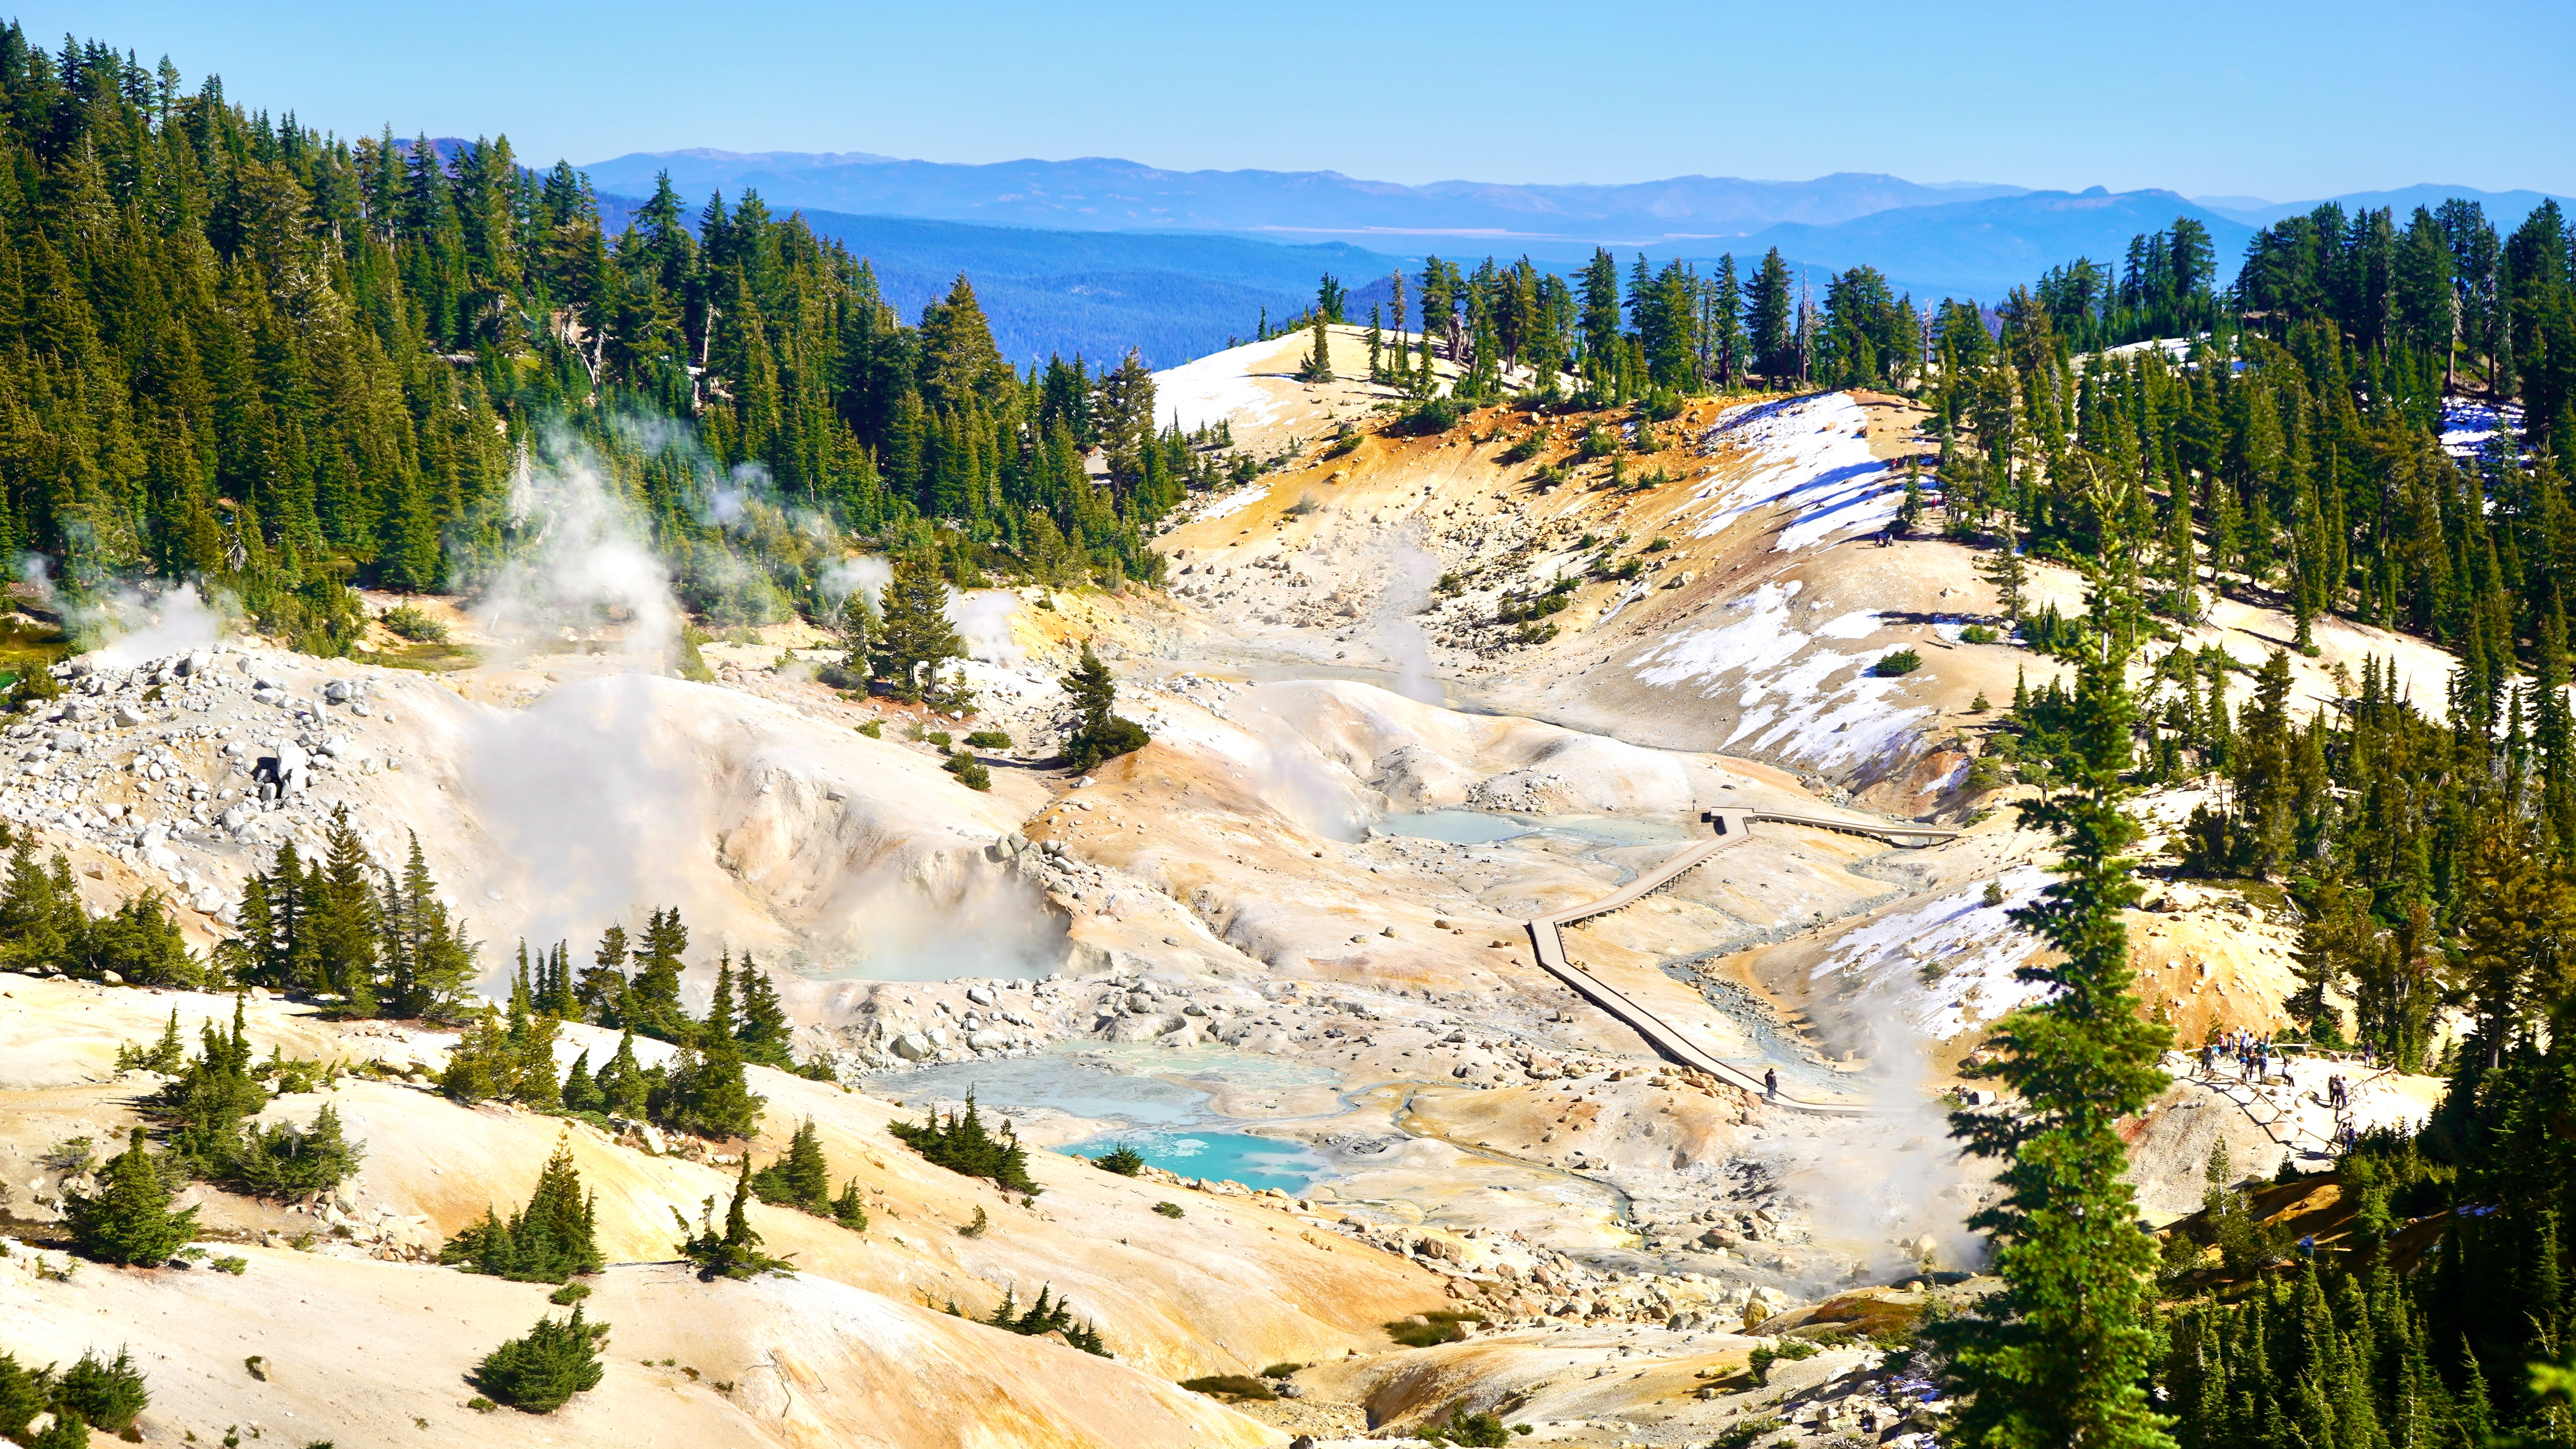 Steam rises form hot pools surrounded by firs.